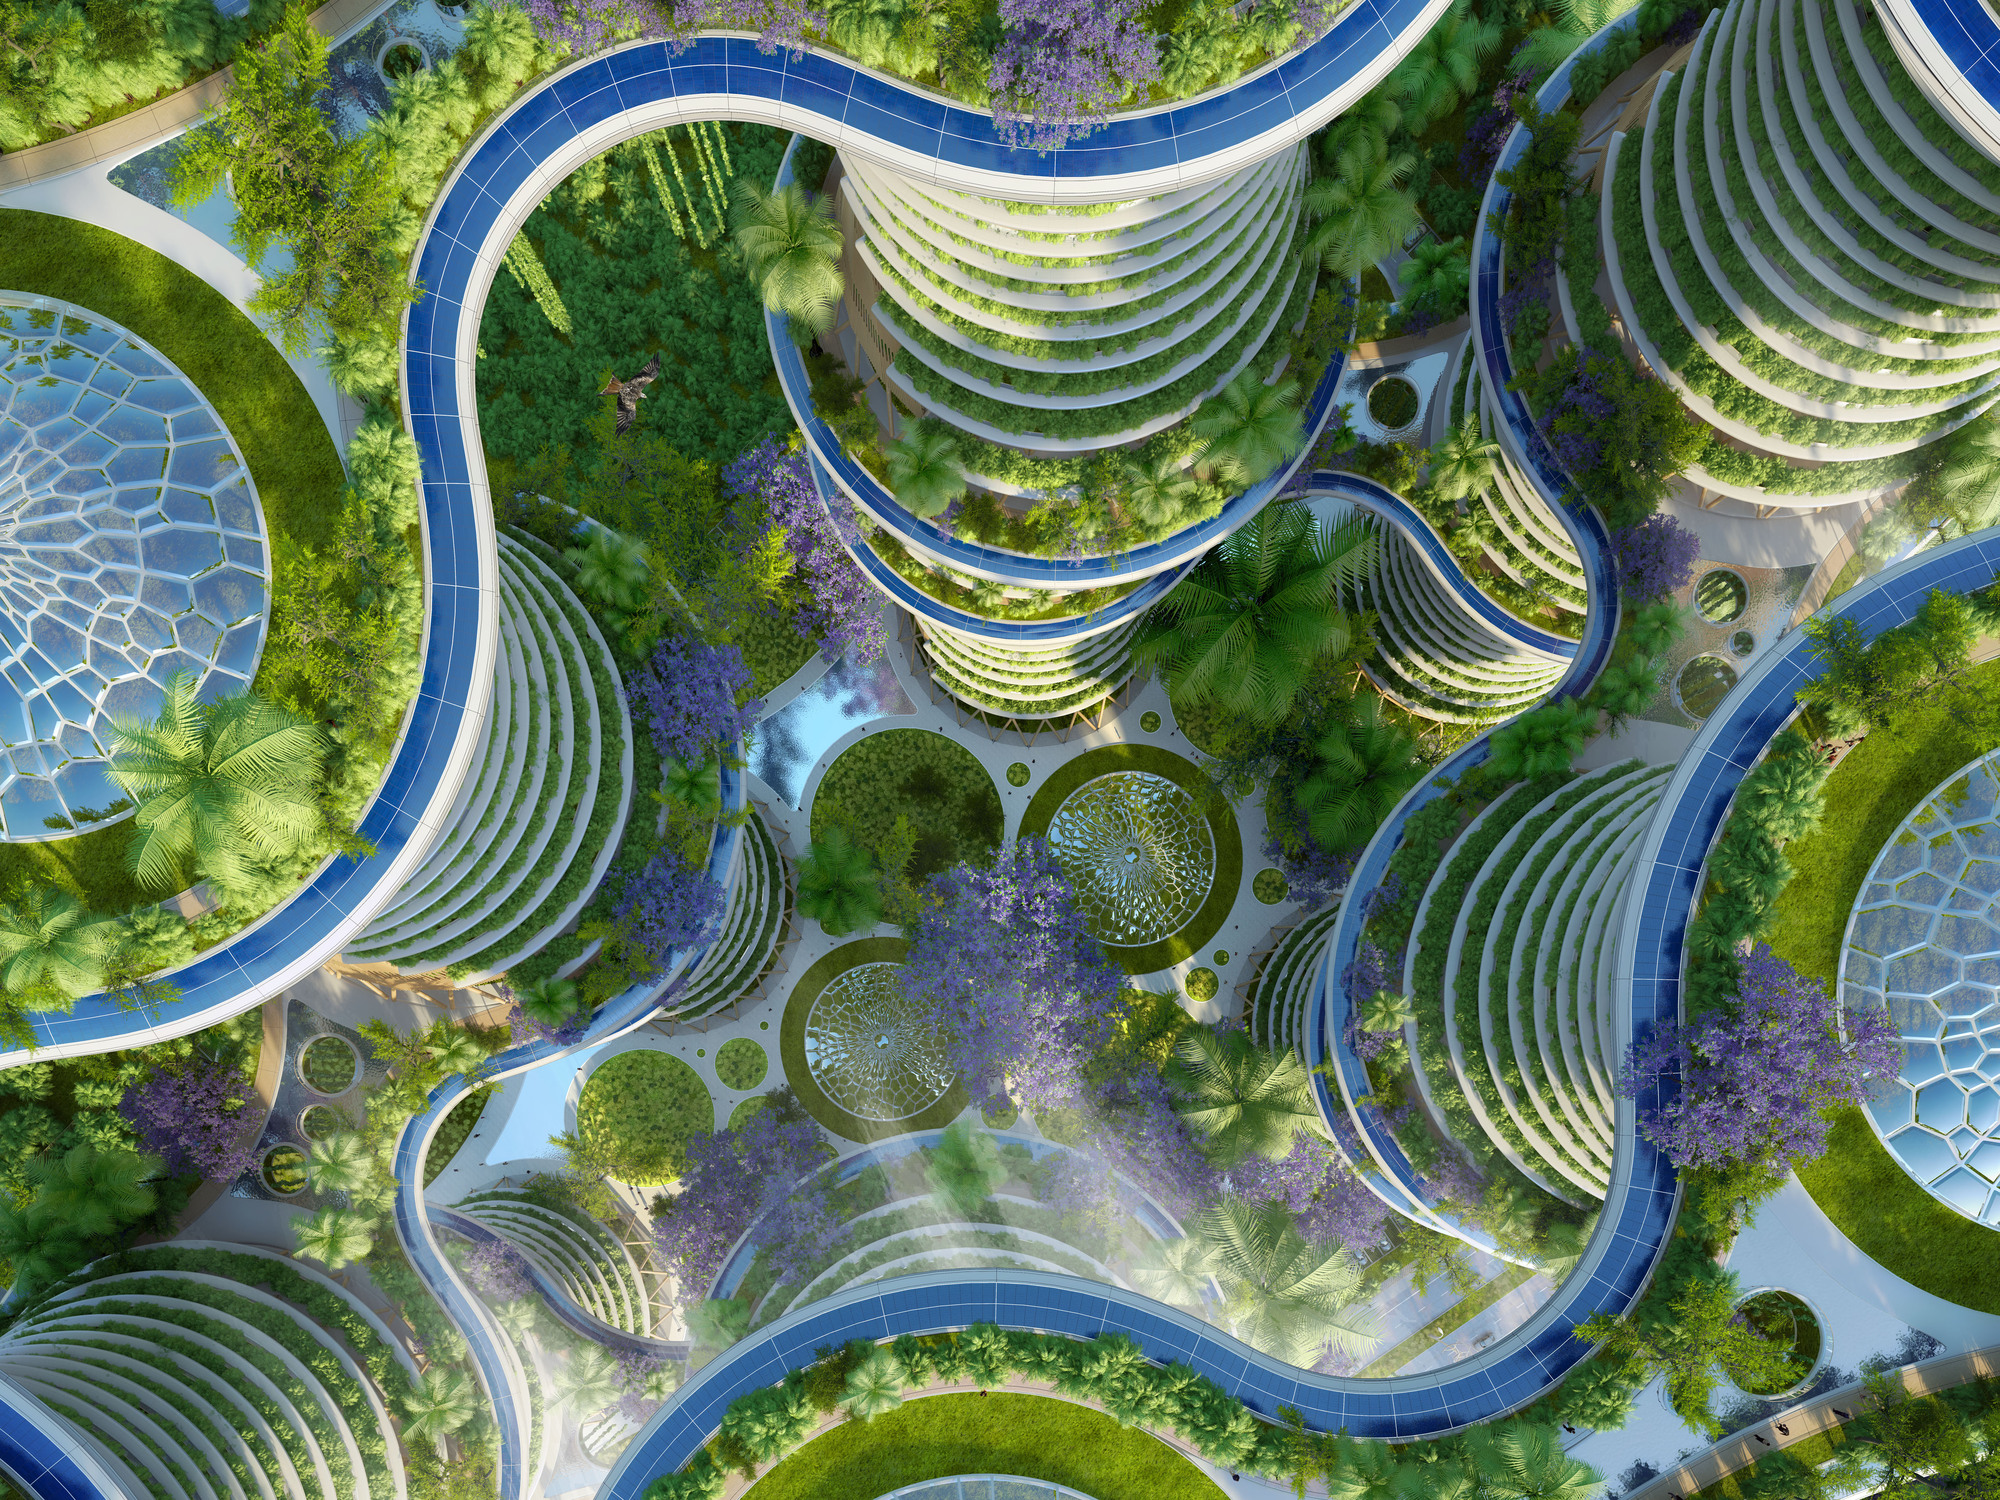 Roof Design Ideas: Gallery Of Vincent Callebaut's Hyperions Eco-Neighborhood